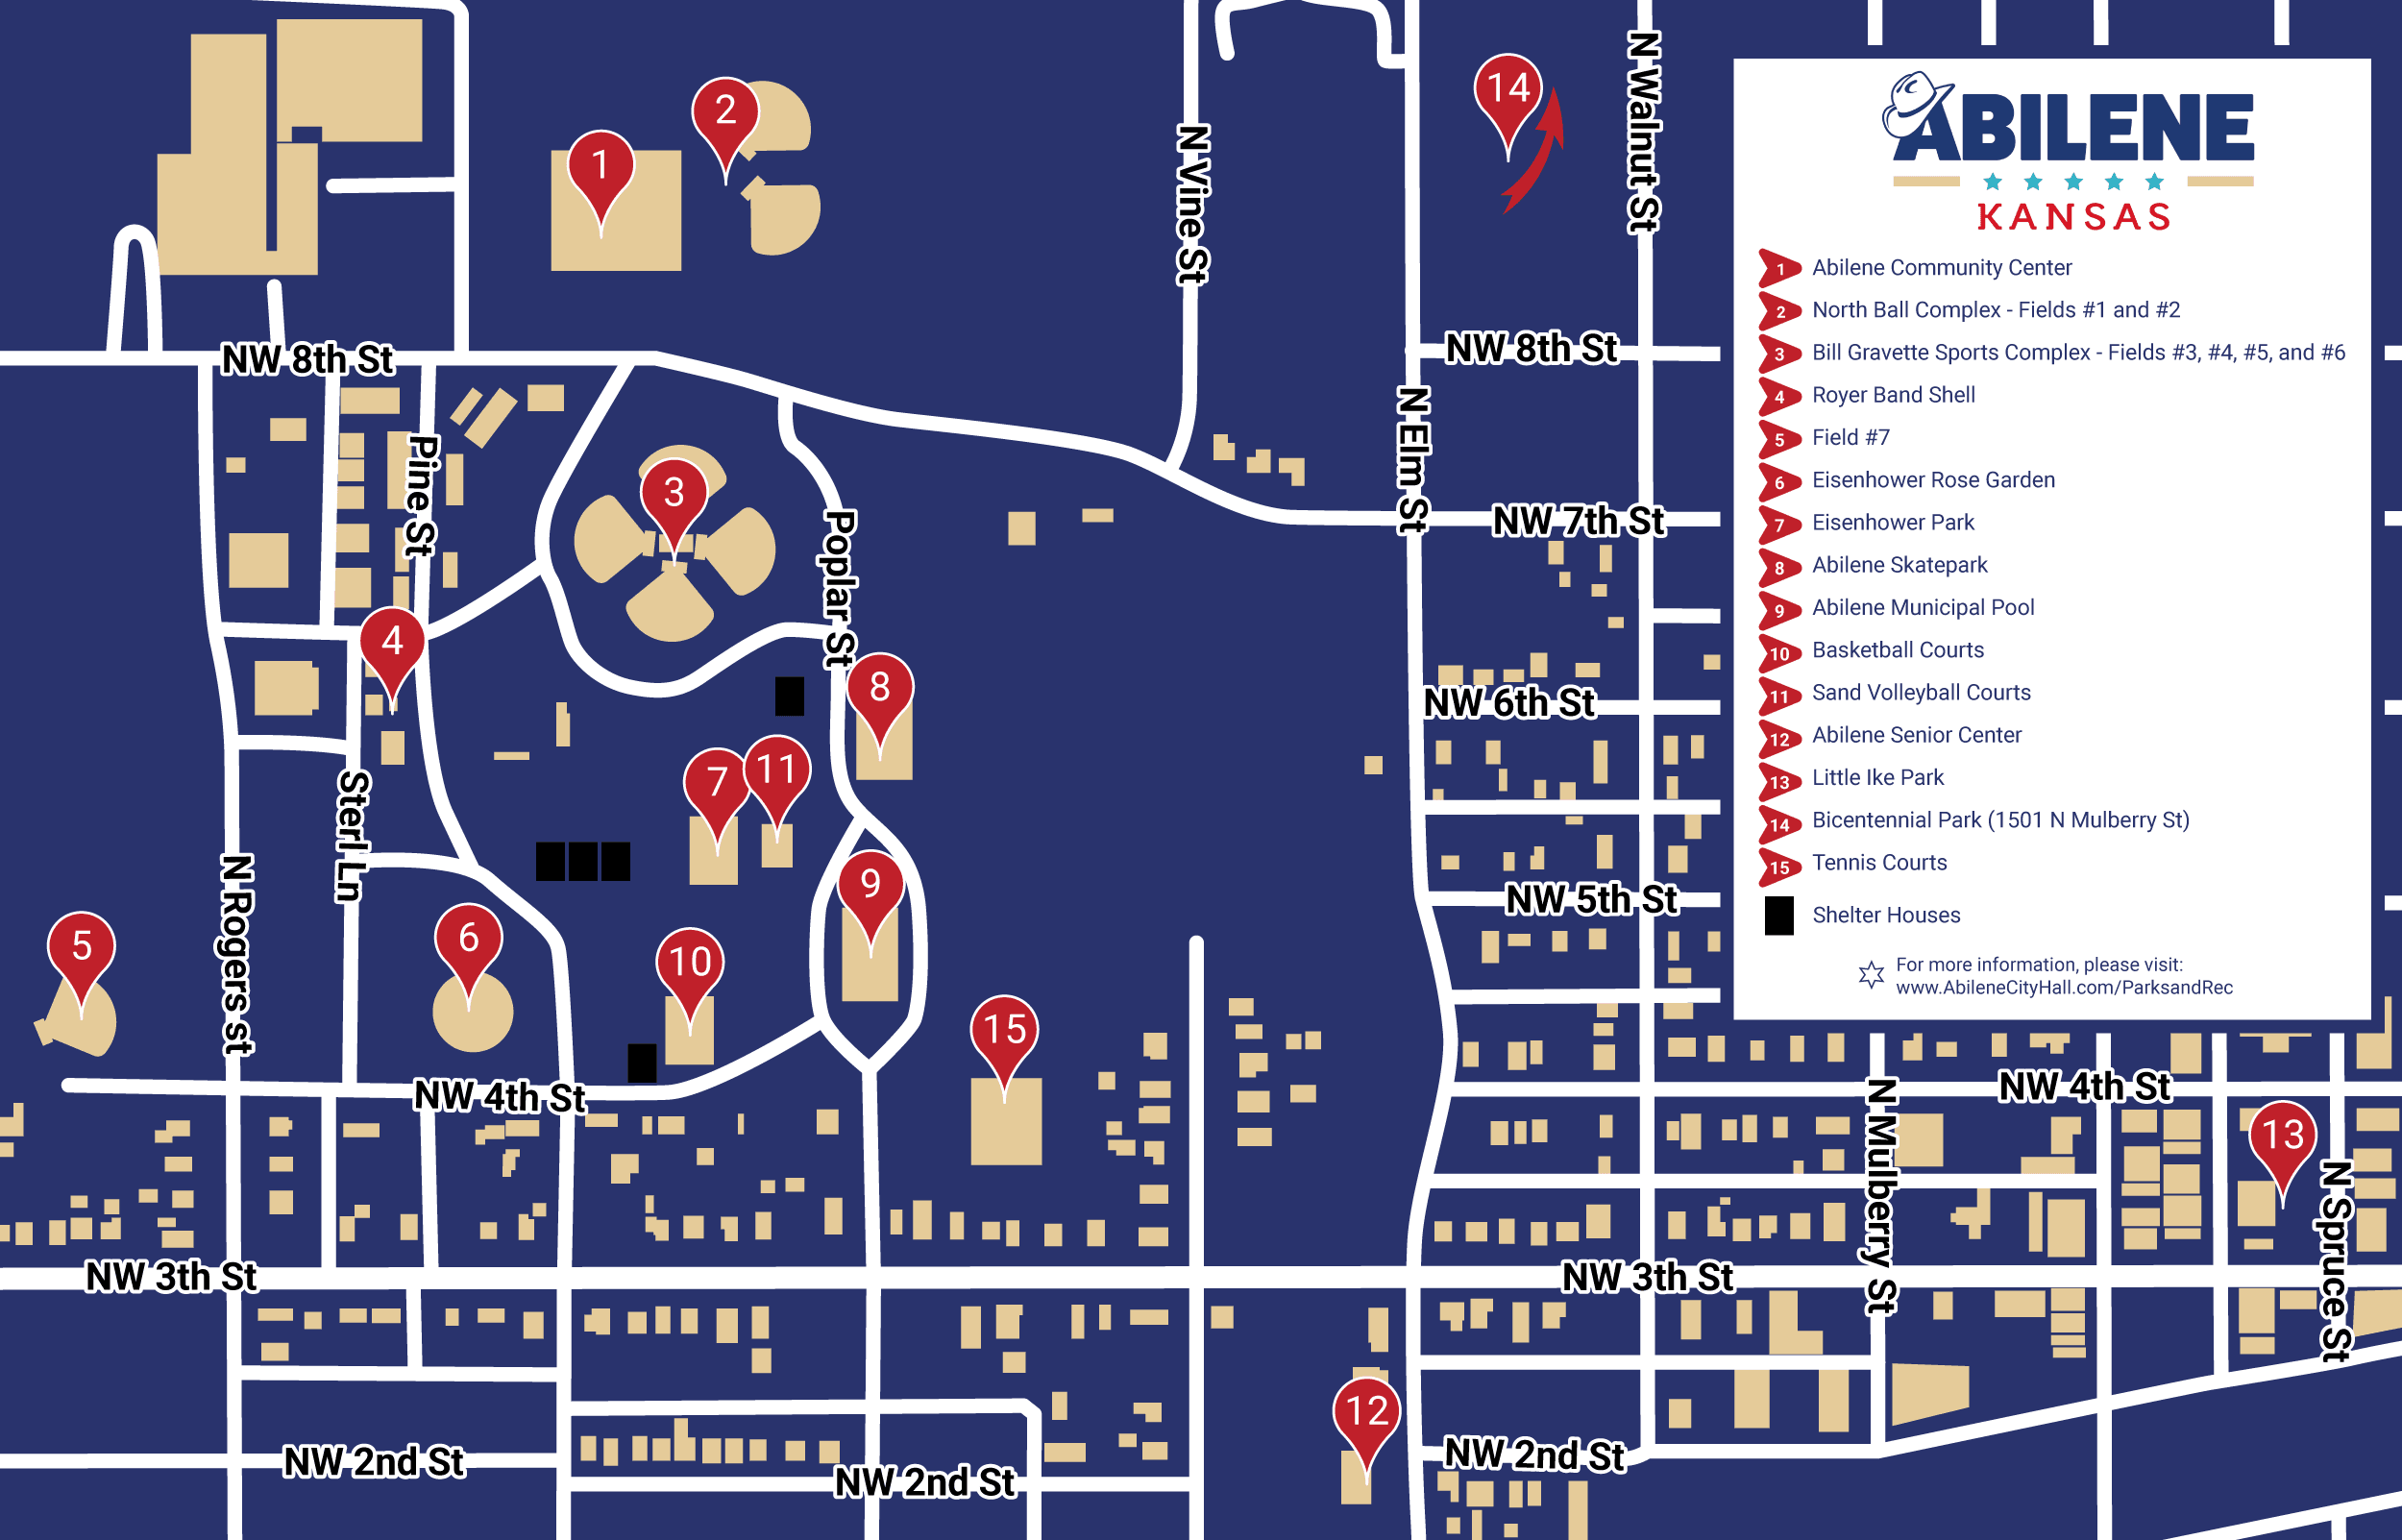 Map of the parks in Abilene